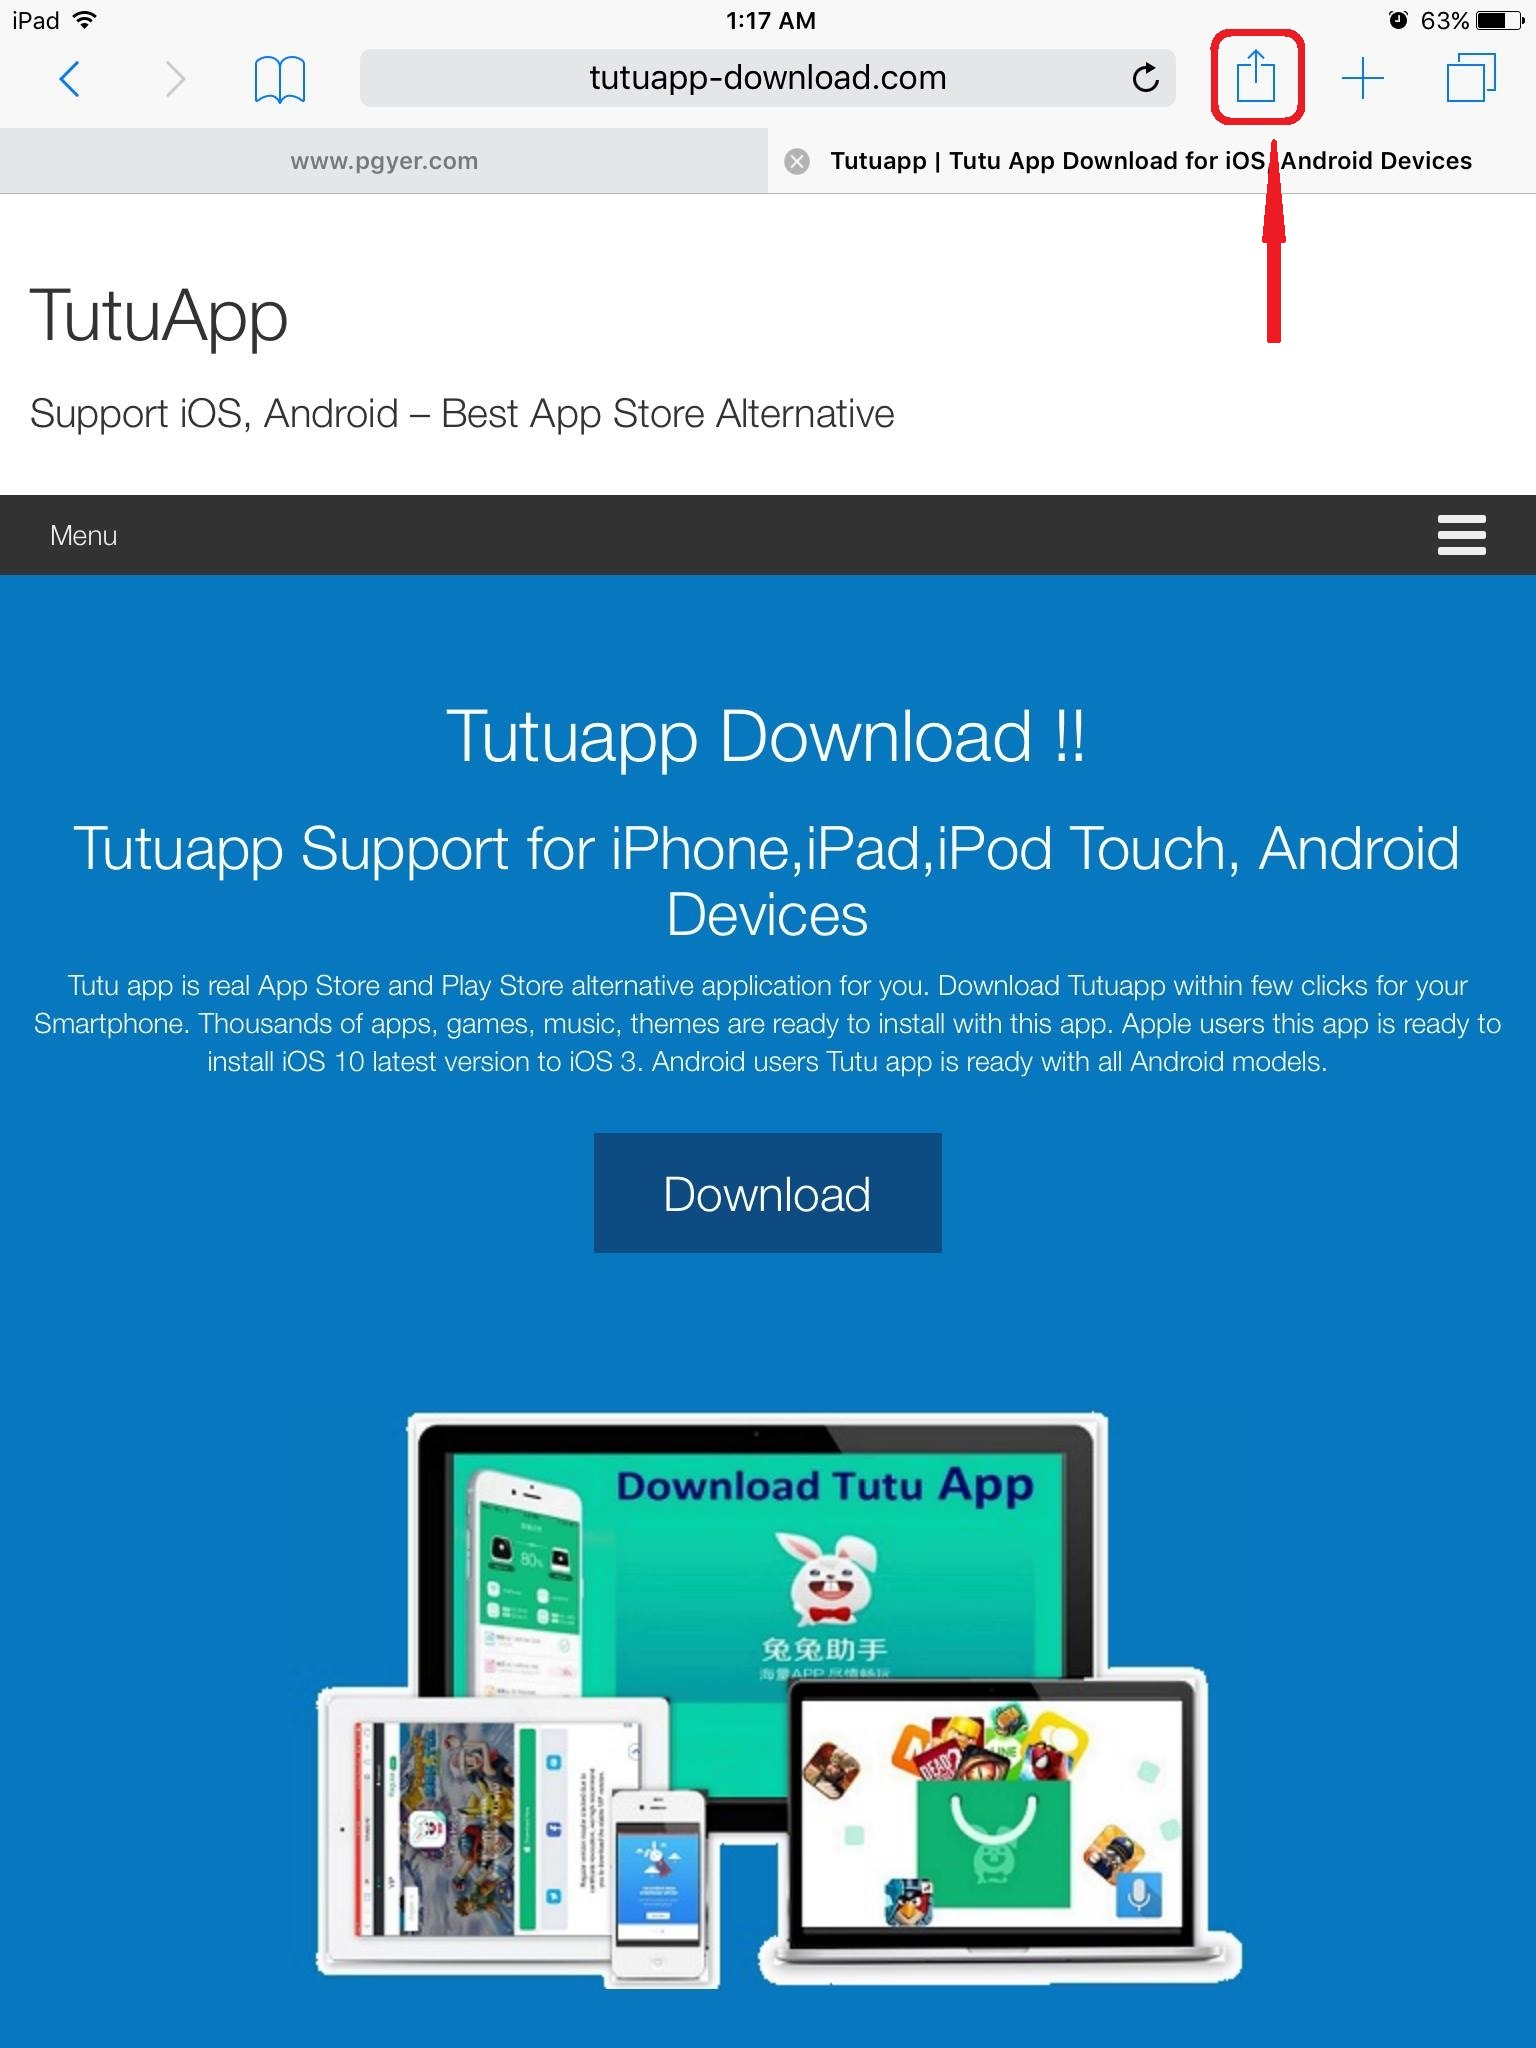 tutuapp update latest version